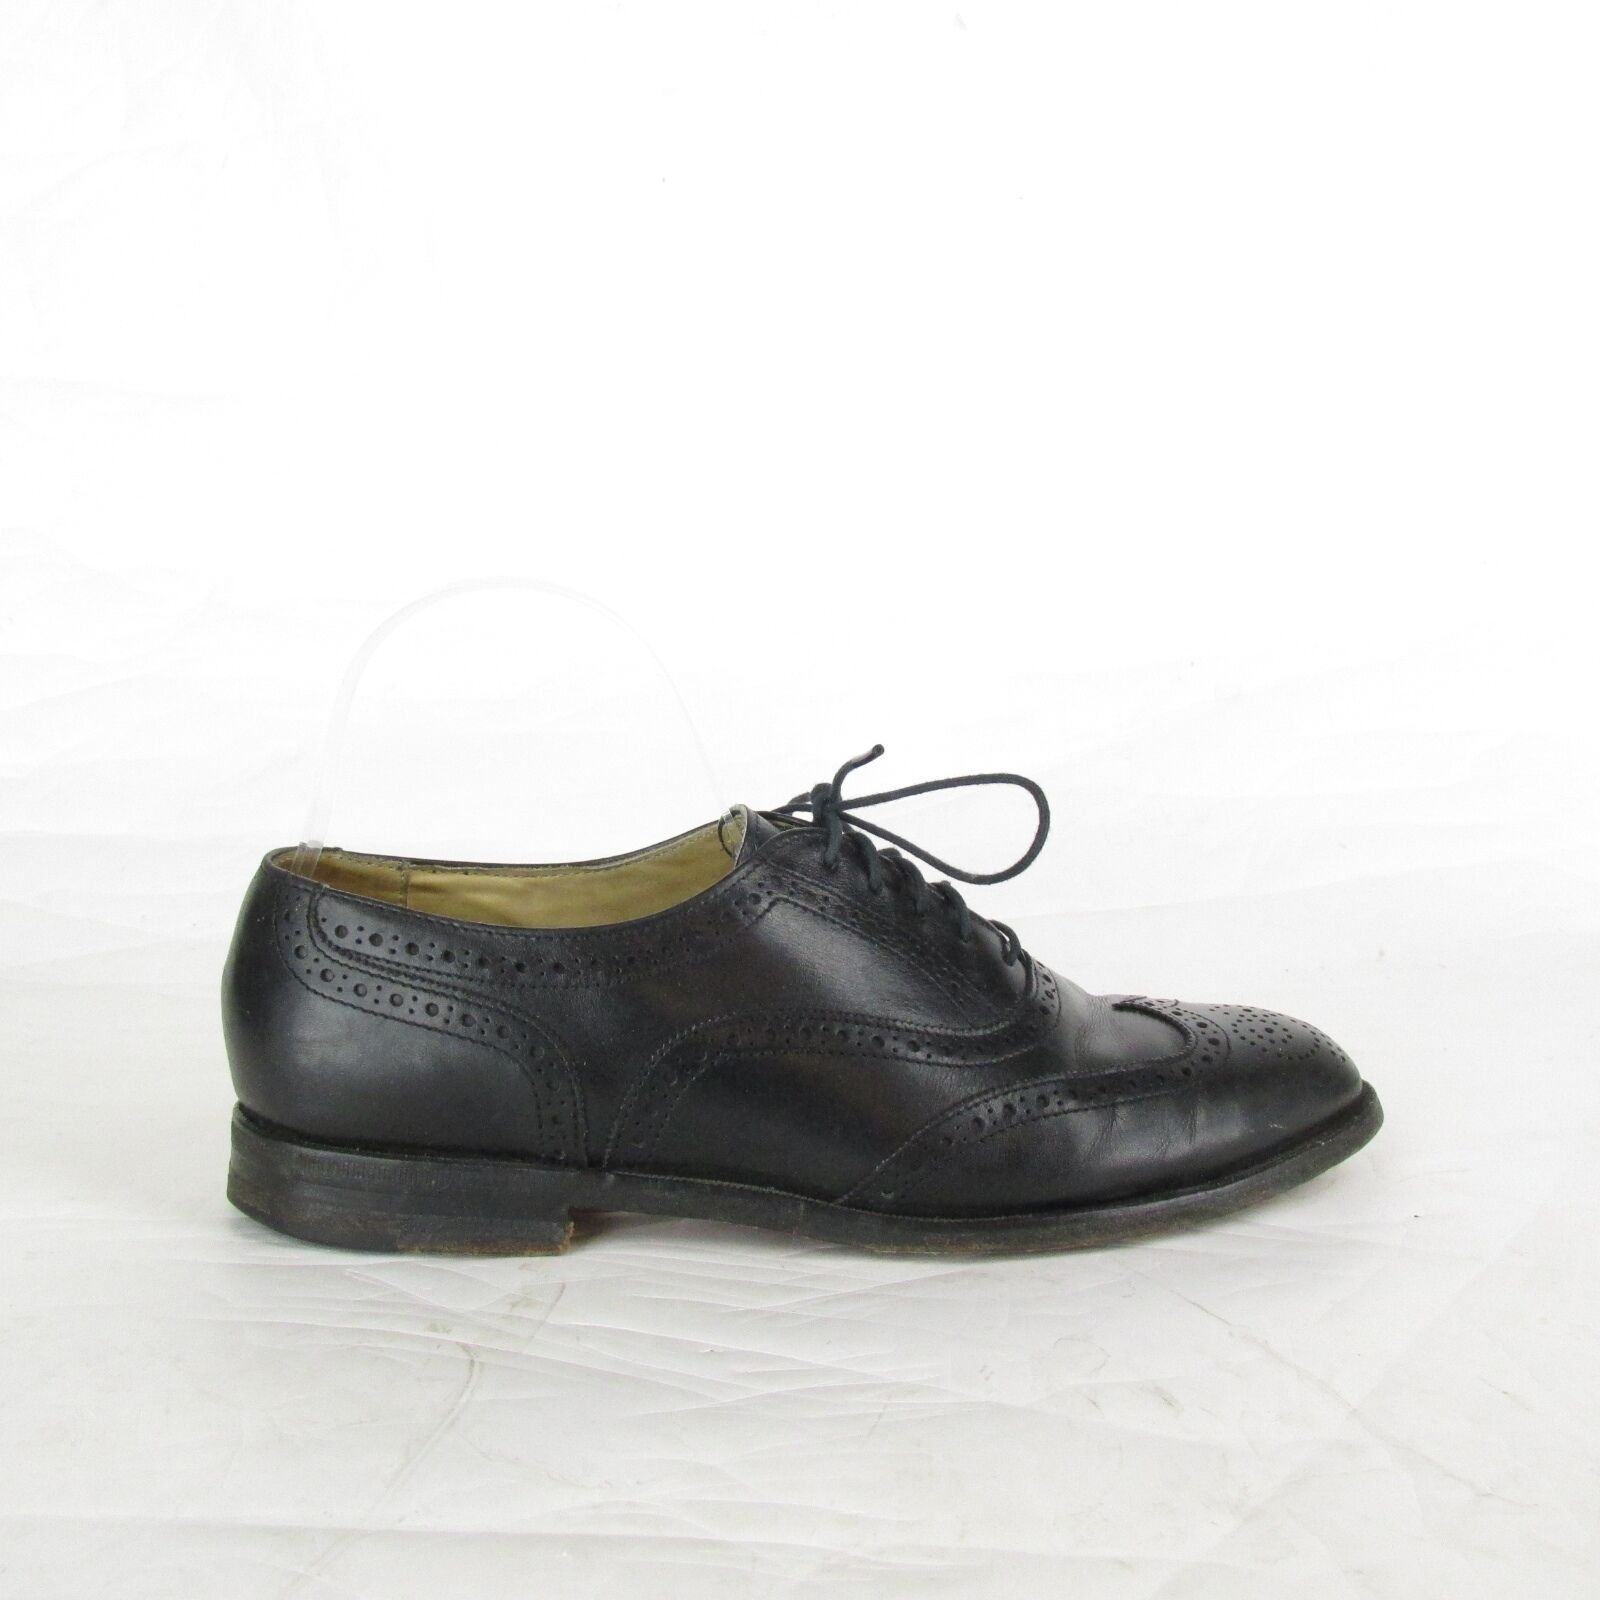 Men's Black Leather Wing Tip Cole Haan Formal Oxford Dress shoes 7.5 D USA Made